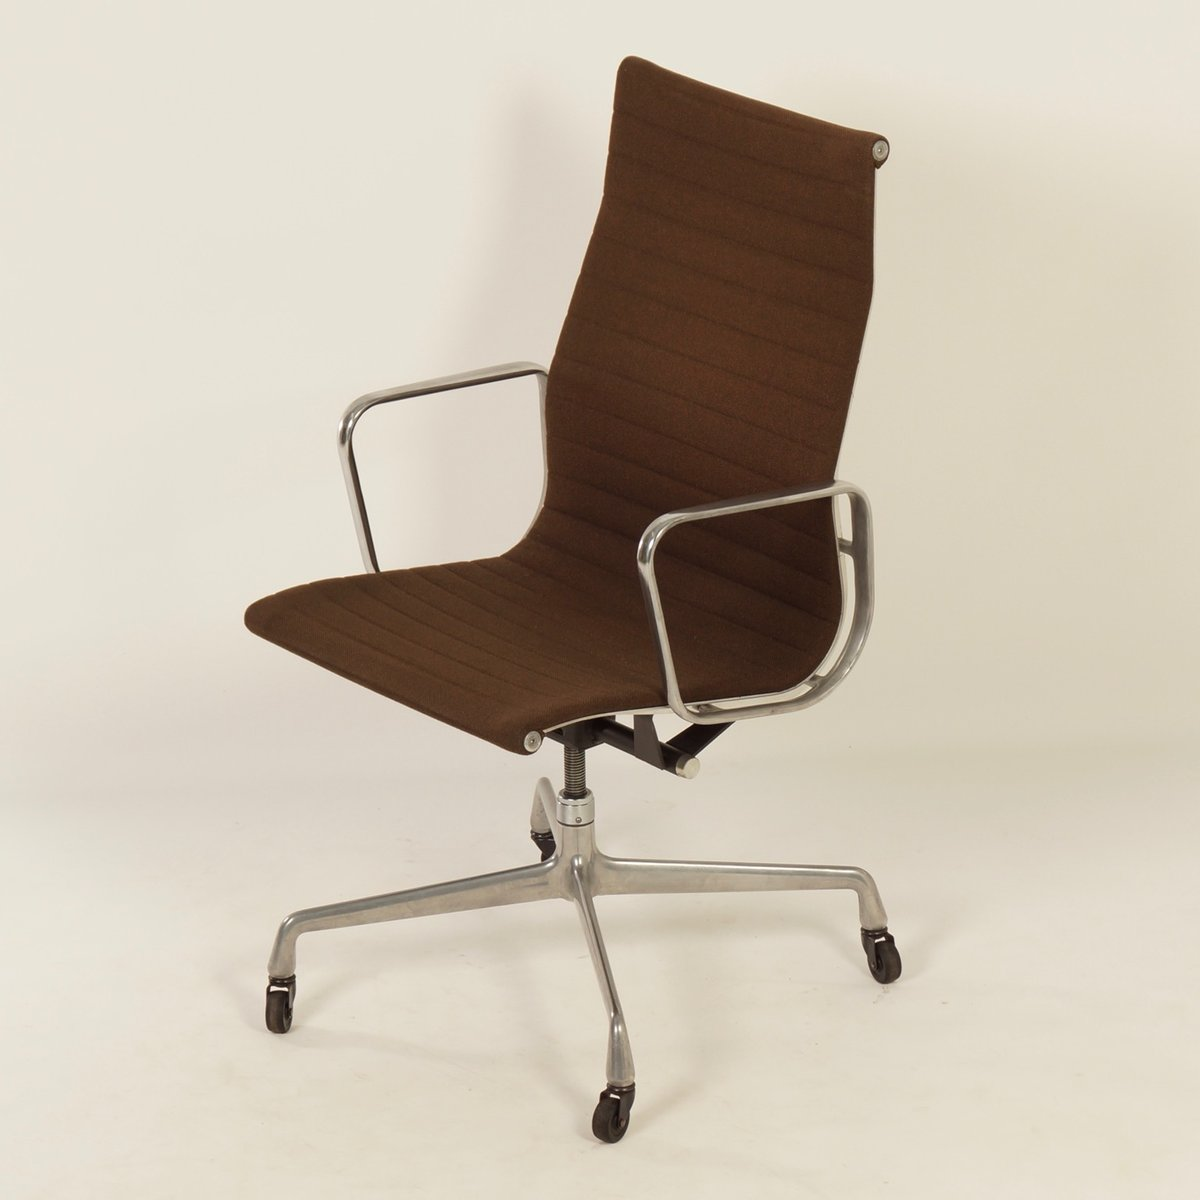 Herman Miller Eames Office Chair Office Chair By Charles And Ray Eames For Herman Miller